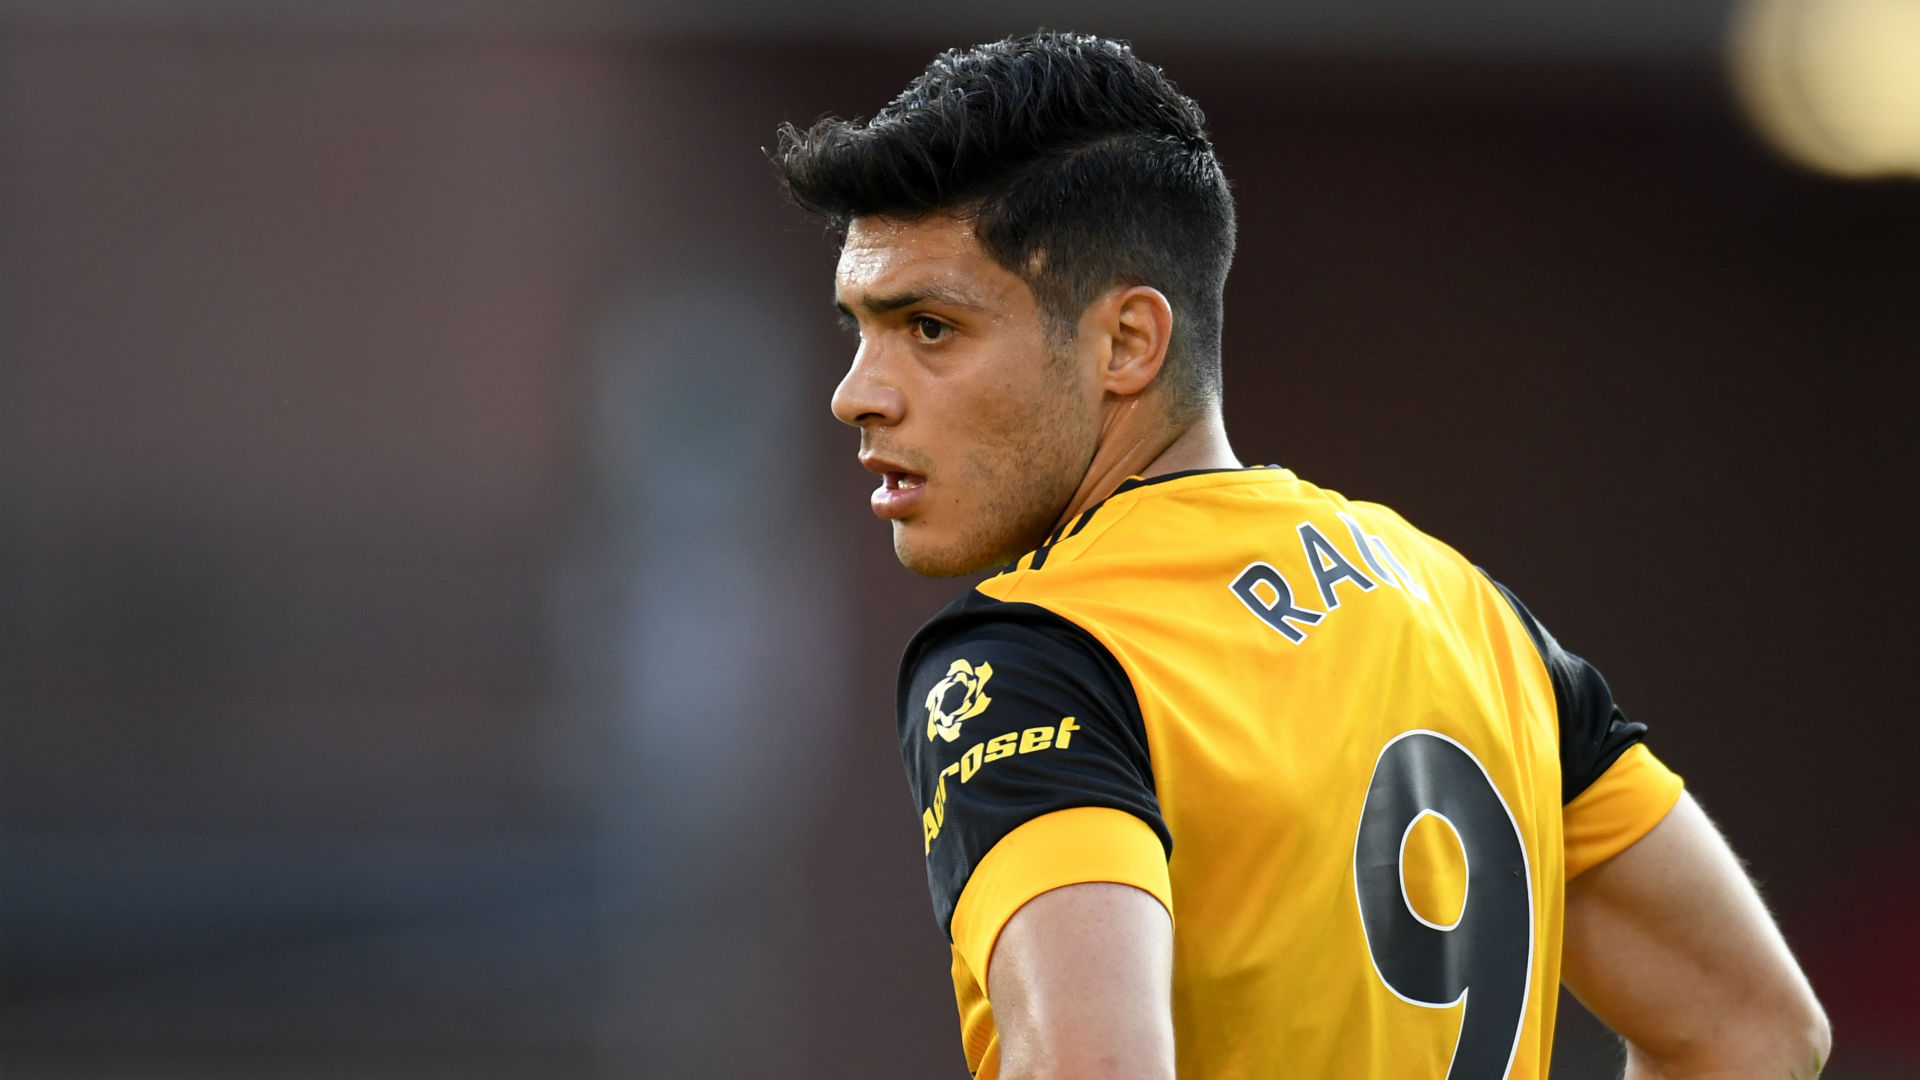 Jimenez ends Man Utd & Juventus rumours with new Wolves contract through to 2024